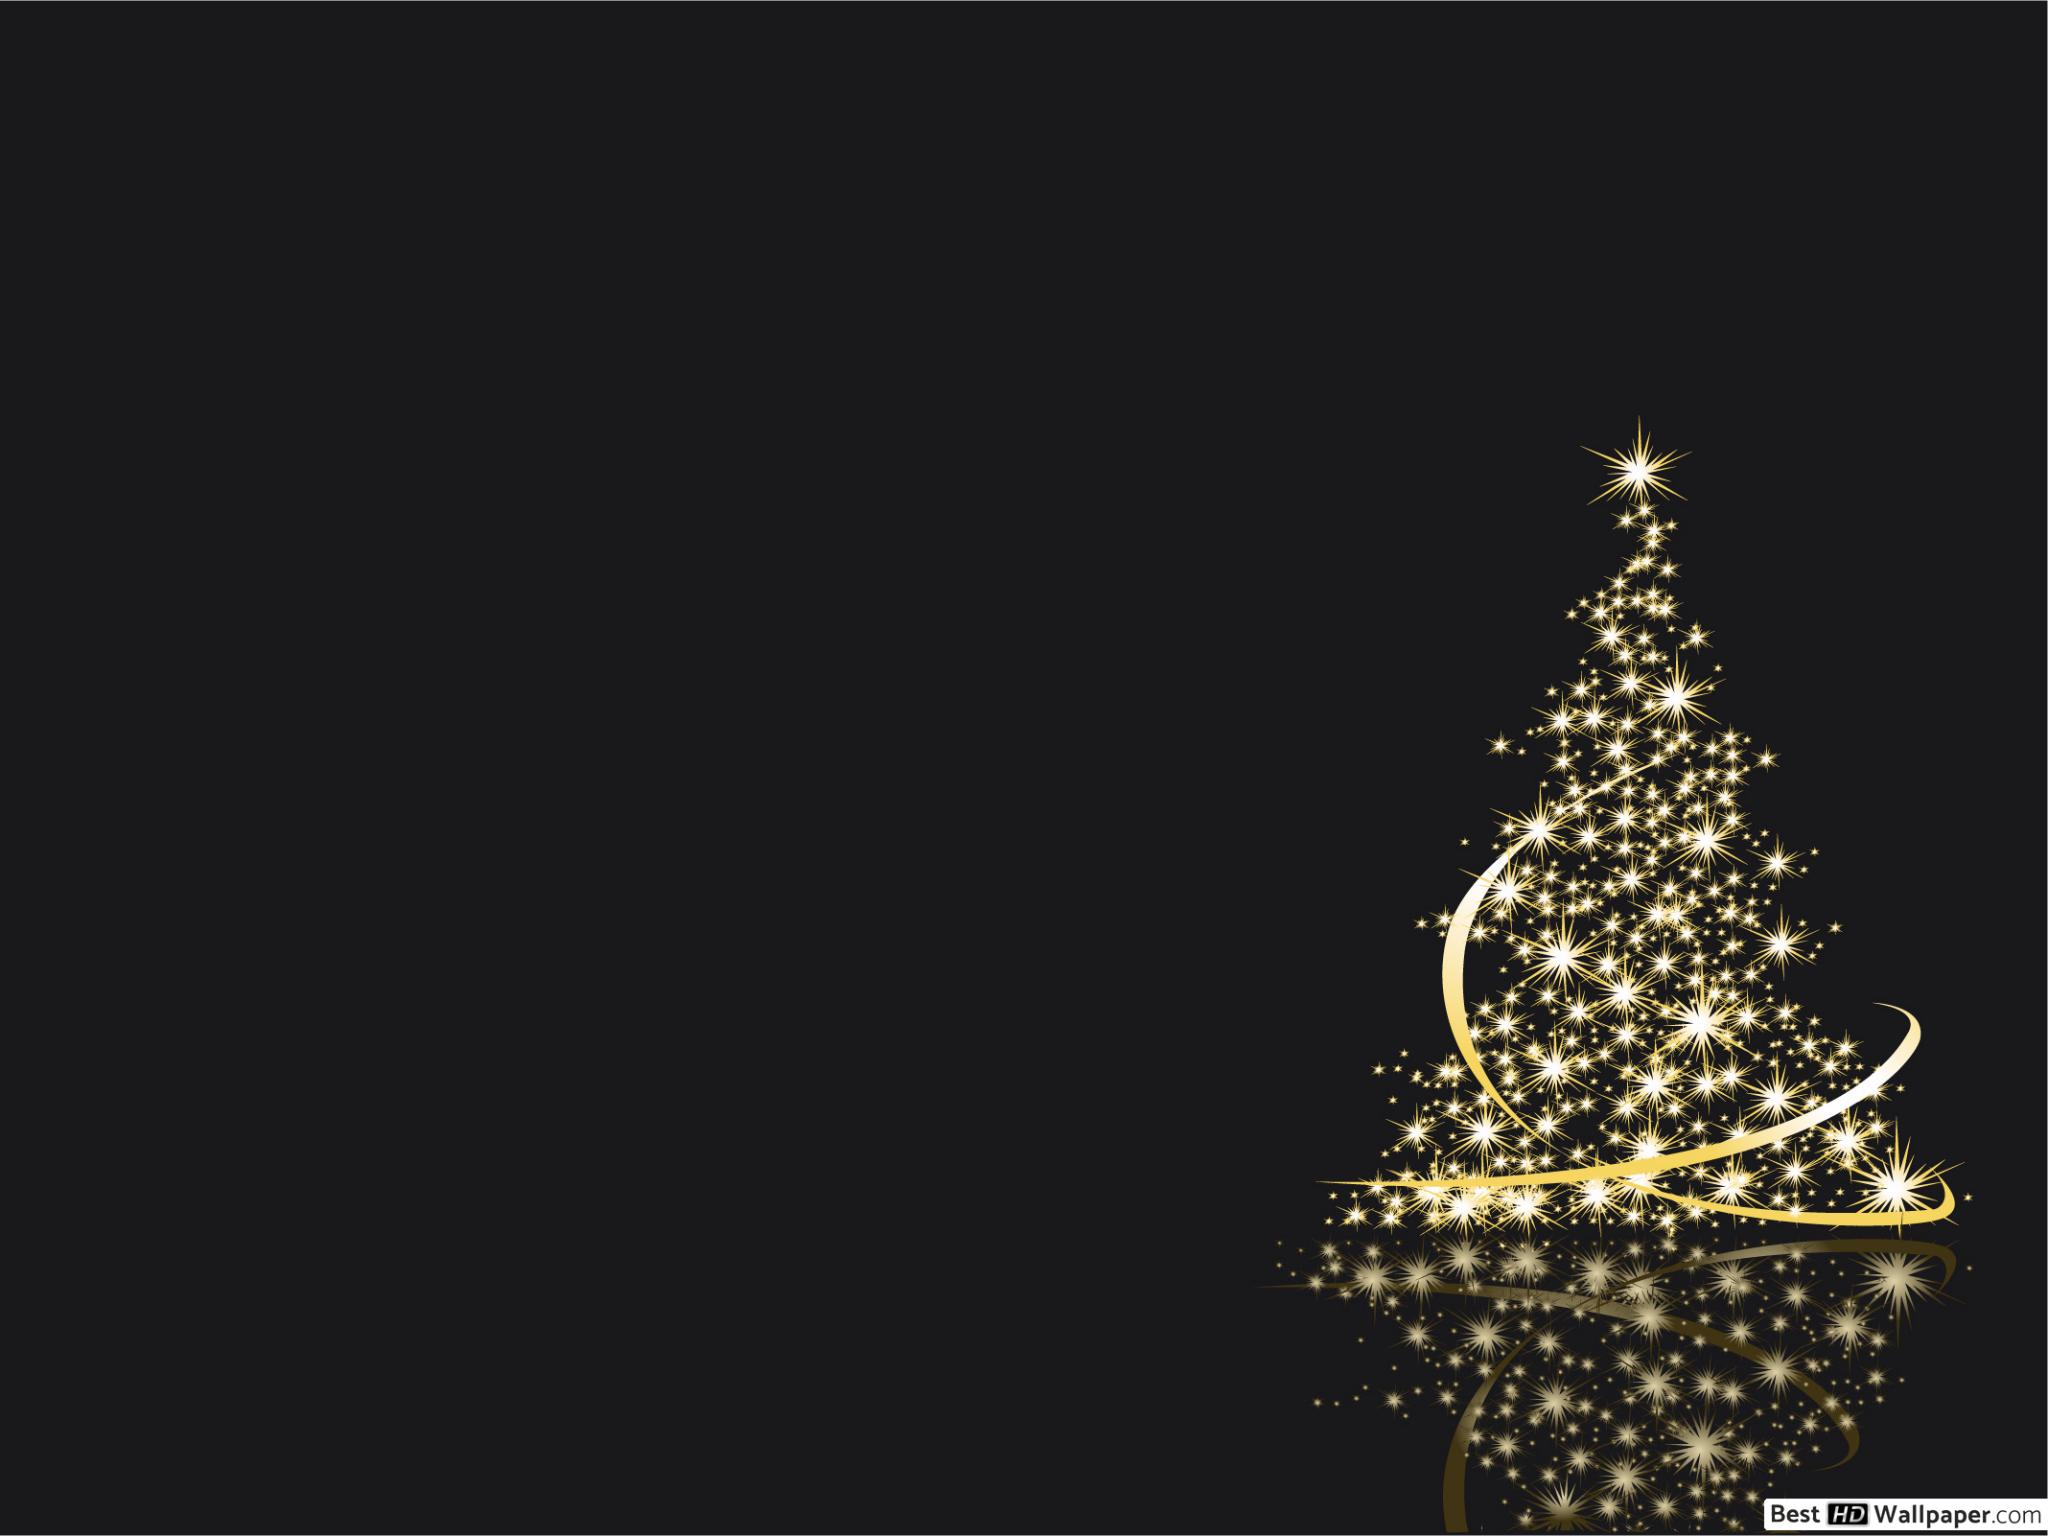 4k christmas wallpaper minimalistic joyeux noel a tous 3118190 hd wallpaper backgrounds download itl cat